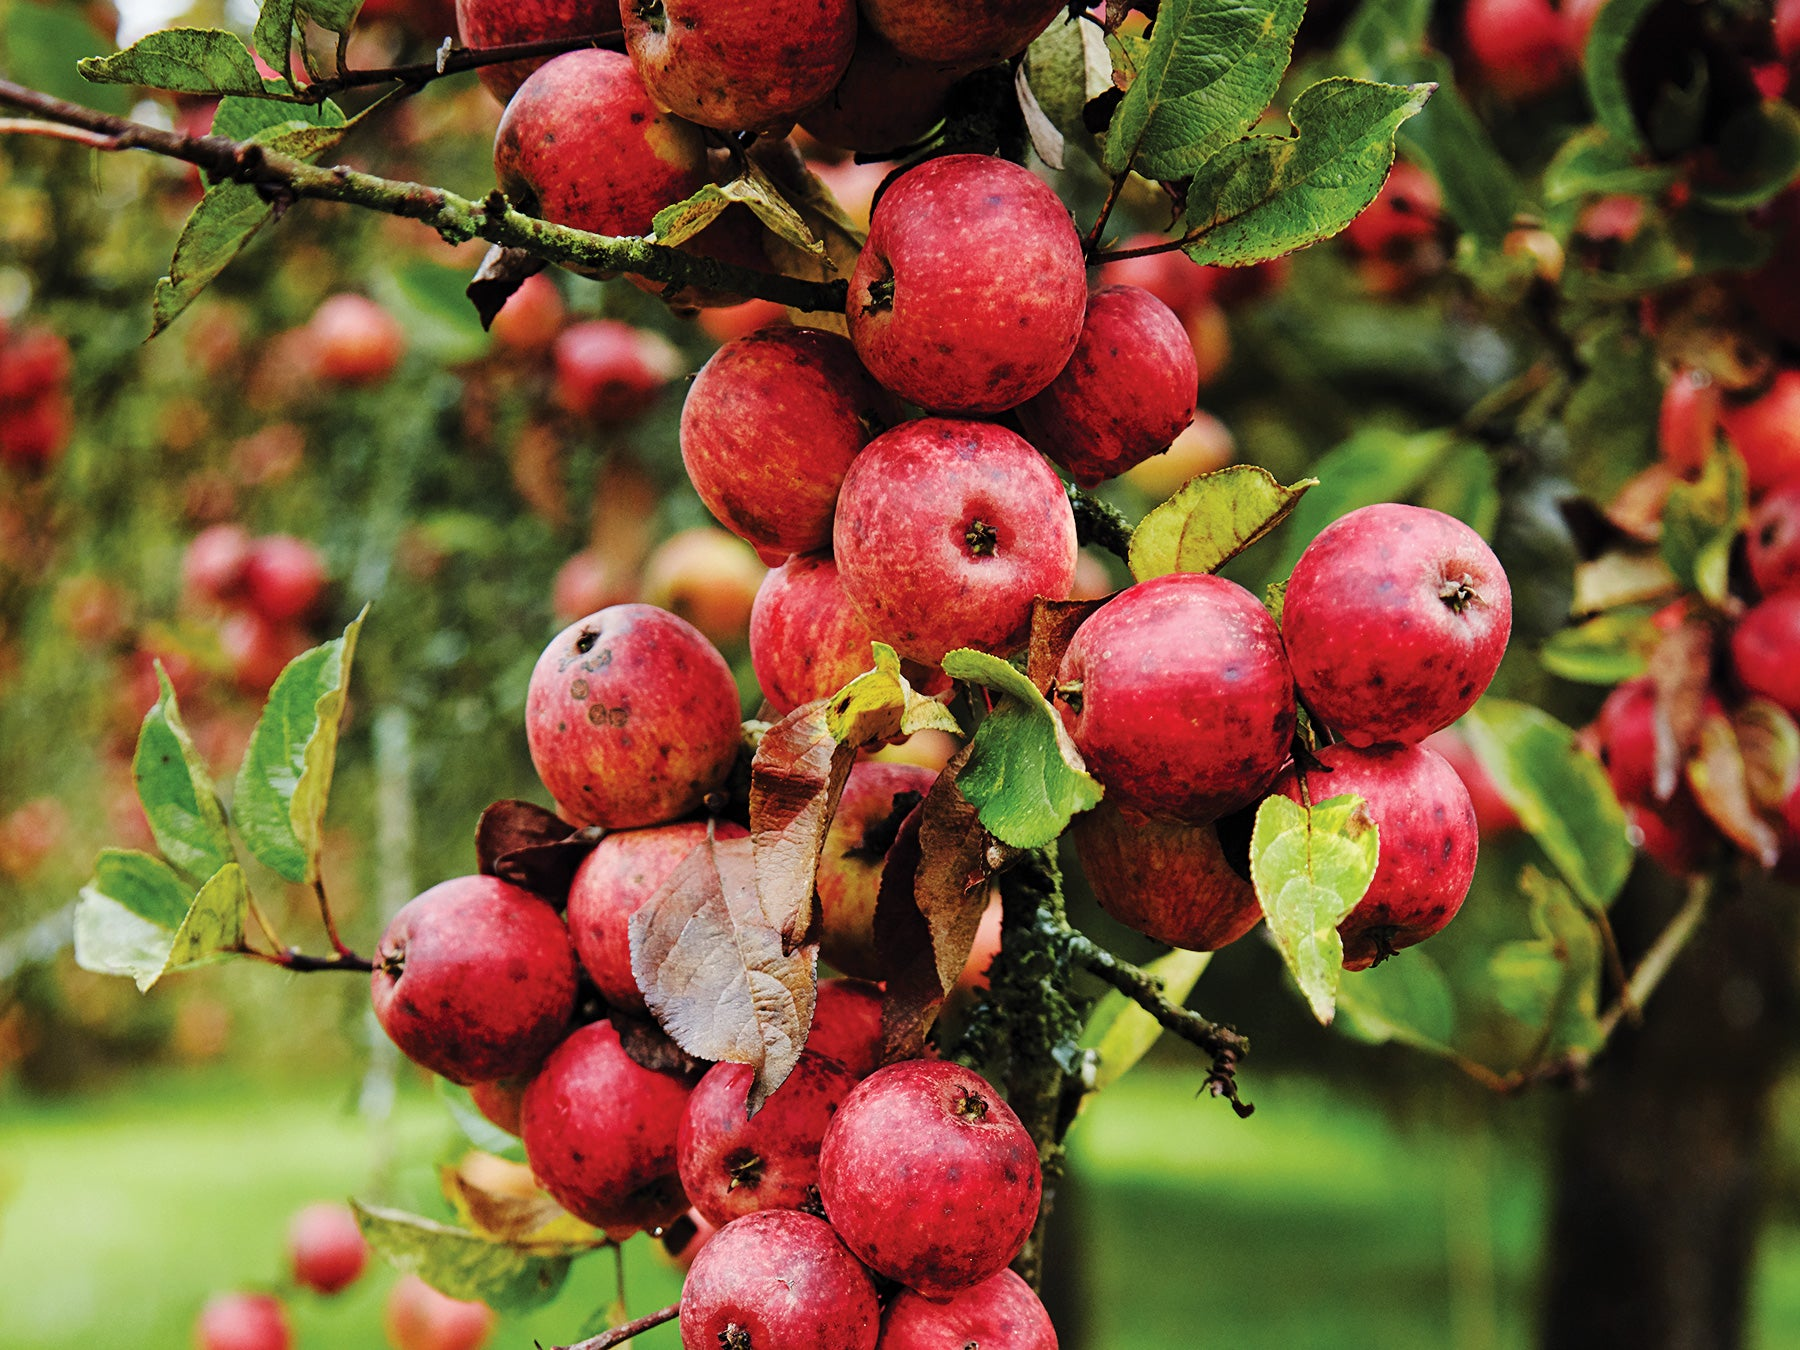 Apples and Calvados are the King and Queen of Normandy